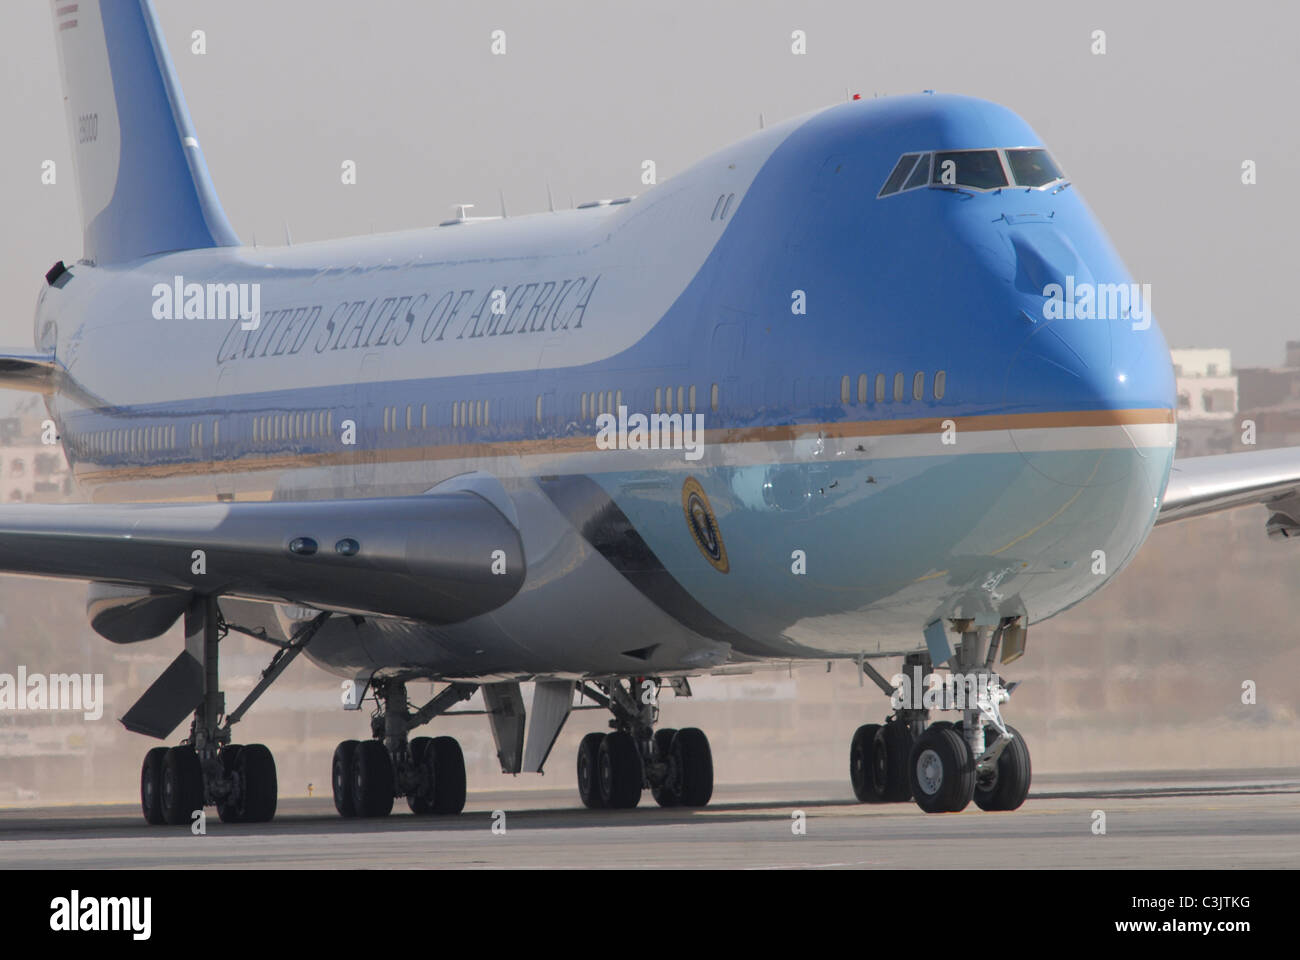 US President Barack Obama arrives in Cairo to make a major policy speech to the Islamic World at Cairo University. - Stock Image